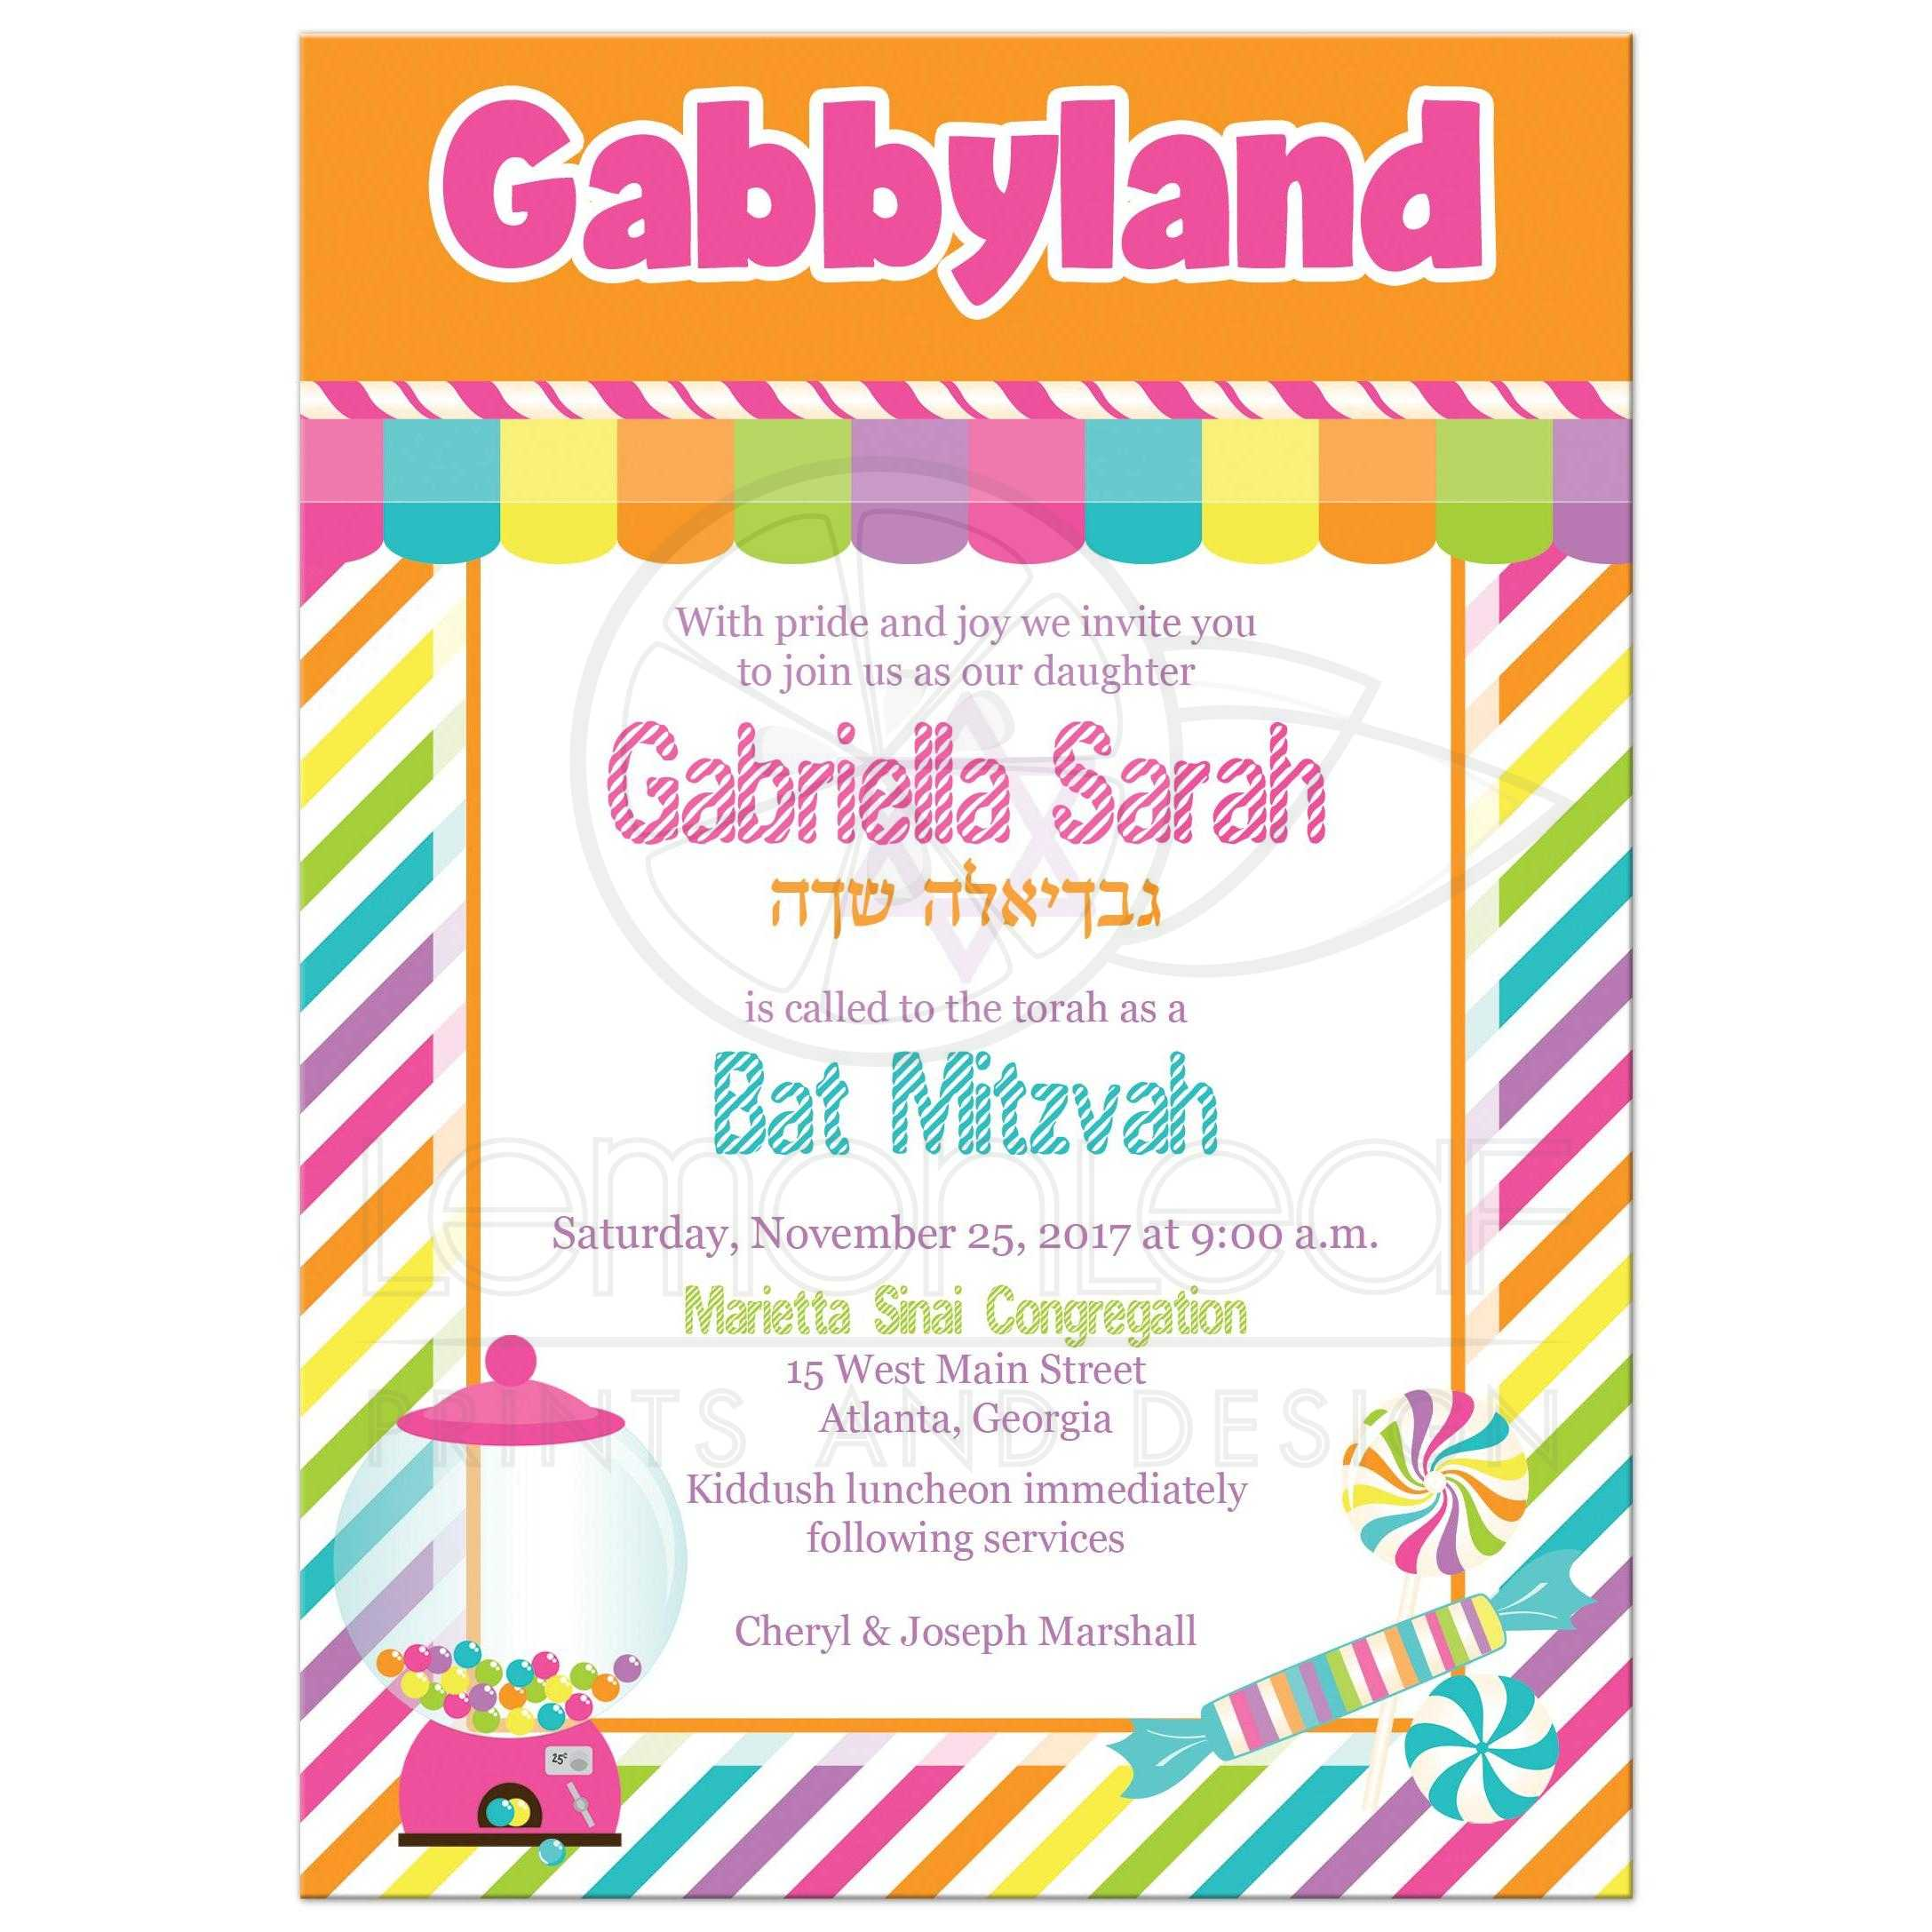 Candyland Bat Mitzvah Invitation Bright Colored Candies Stripes